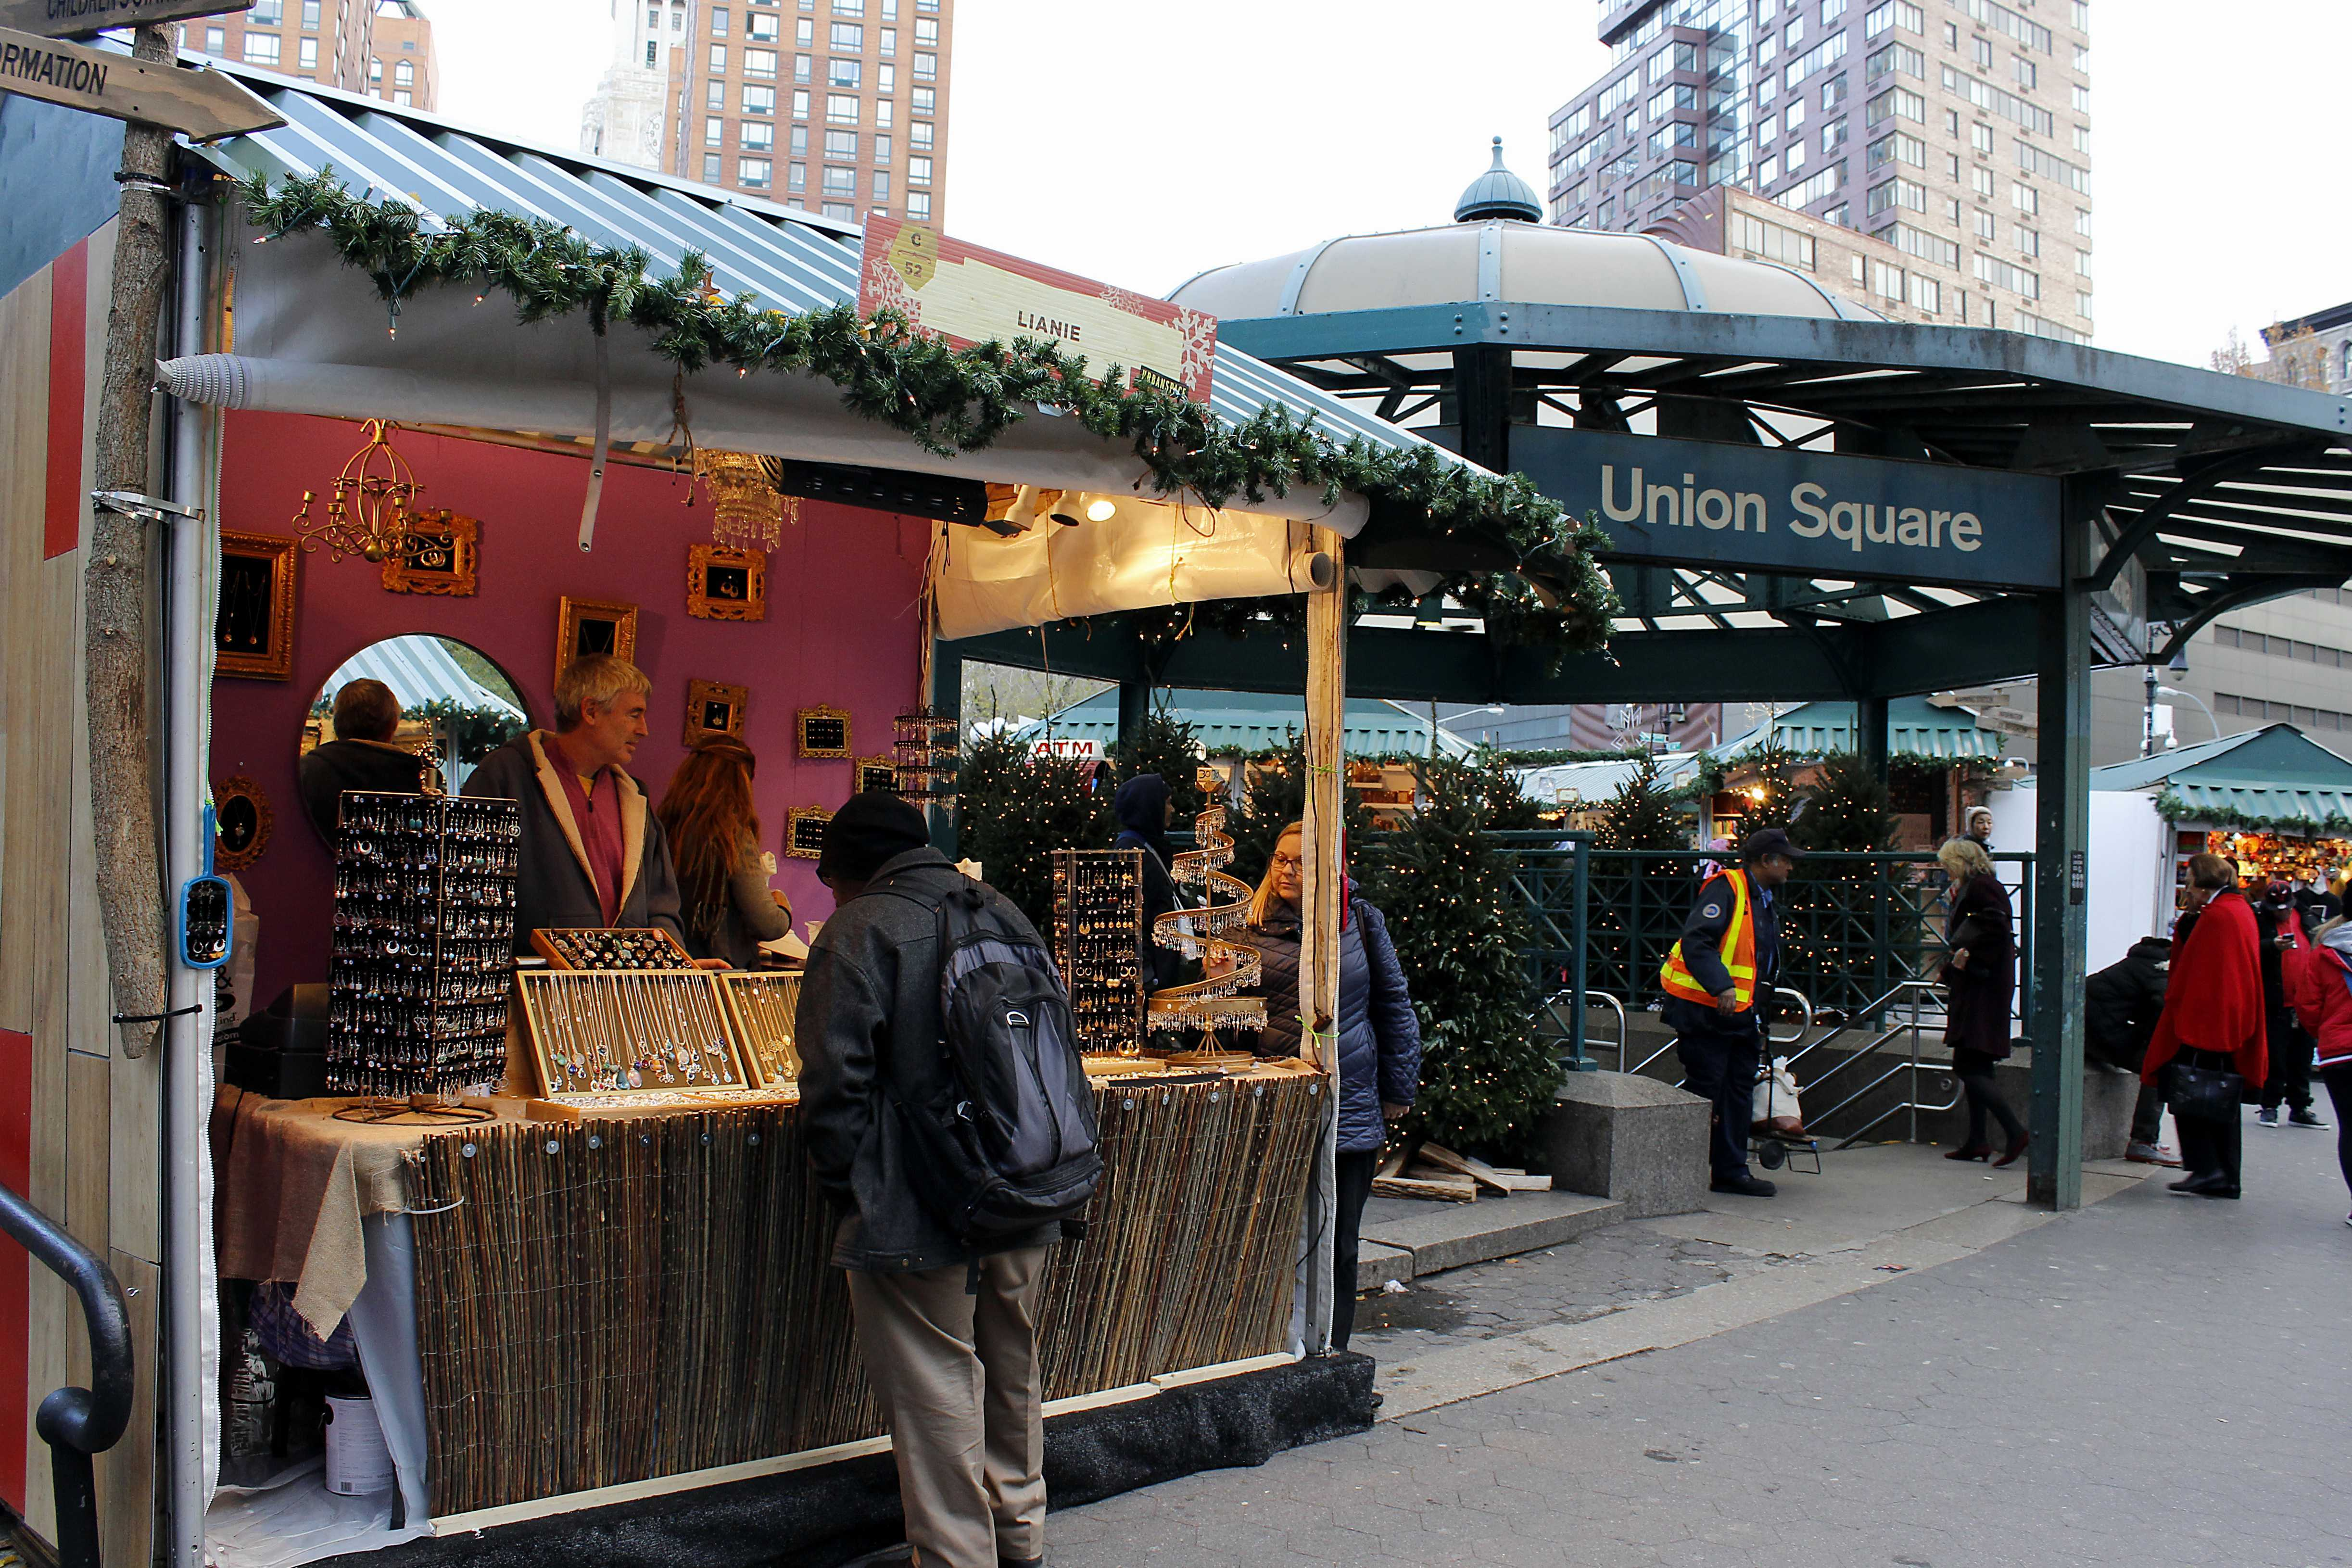 The Union Square Holiday Market features a wide variety of vendors selling jewelry, cosmetics and other beauty products.